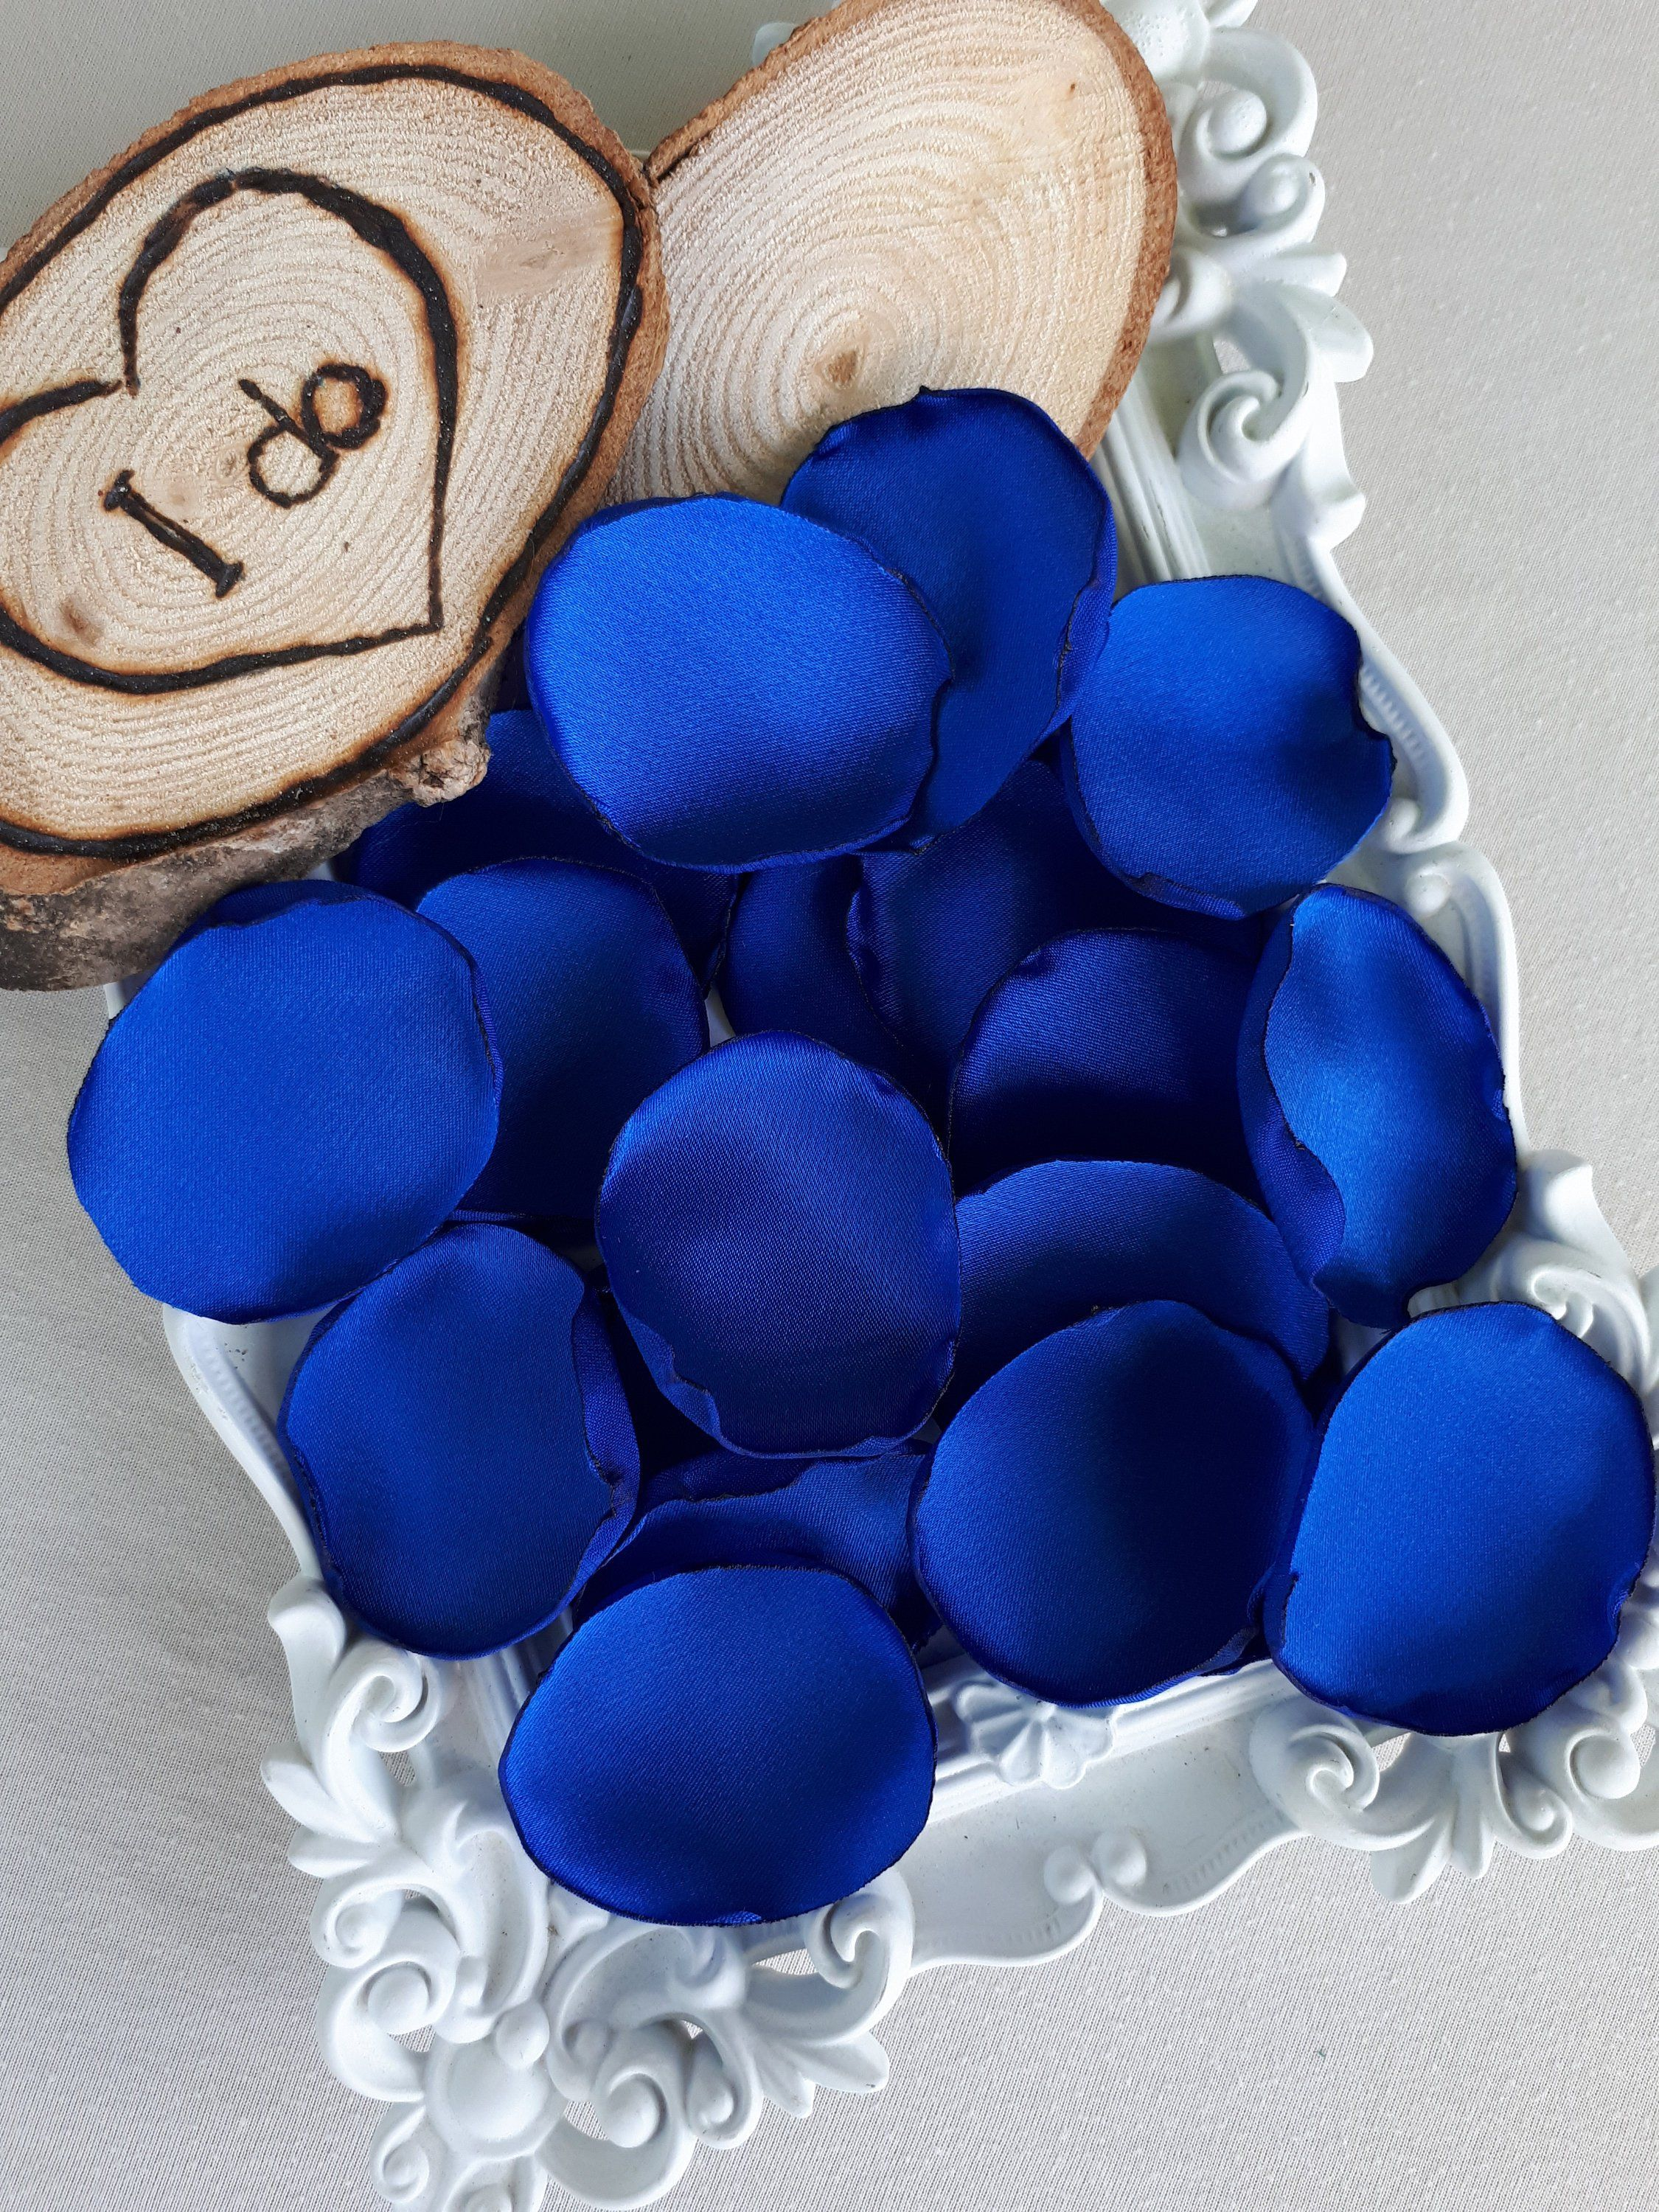 Wedding decorations royal blue  Royal Blue Handmade Satin Petals Royal Blue Wedding Blue Table Decor